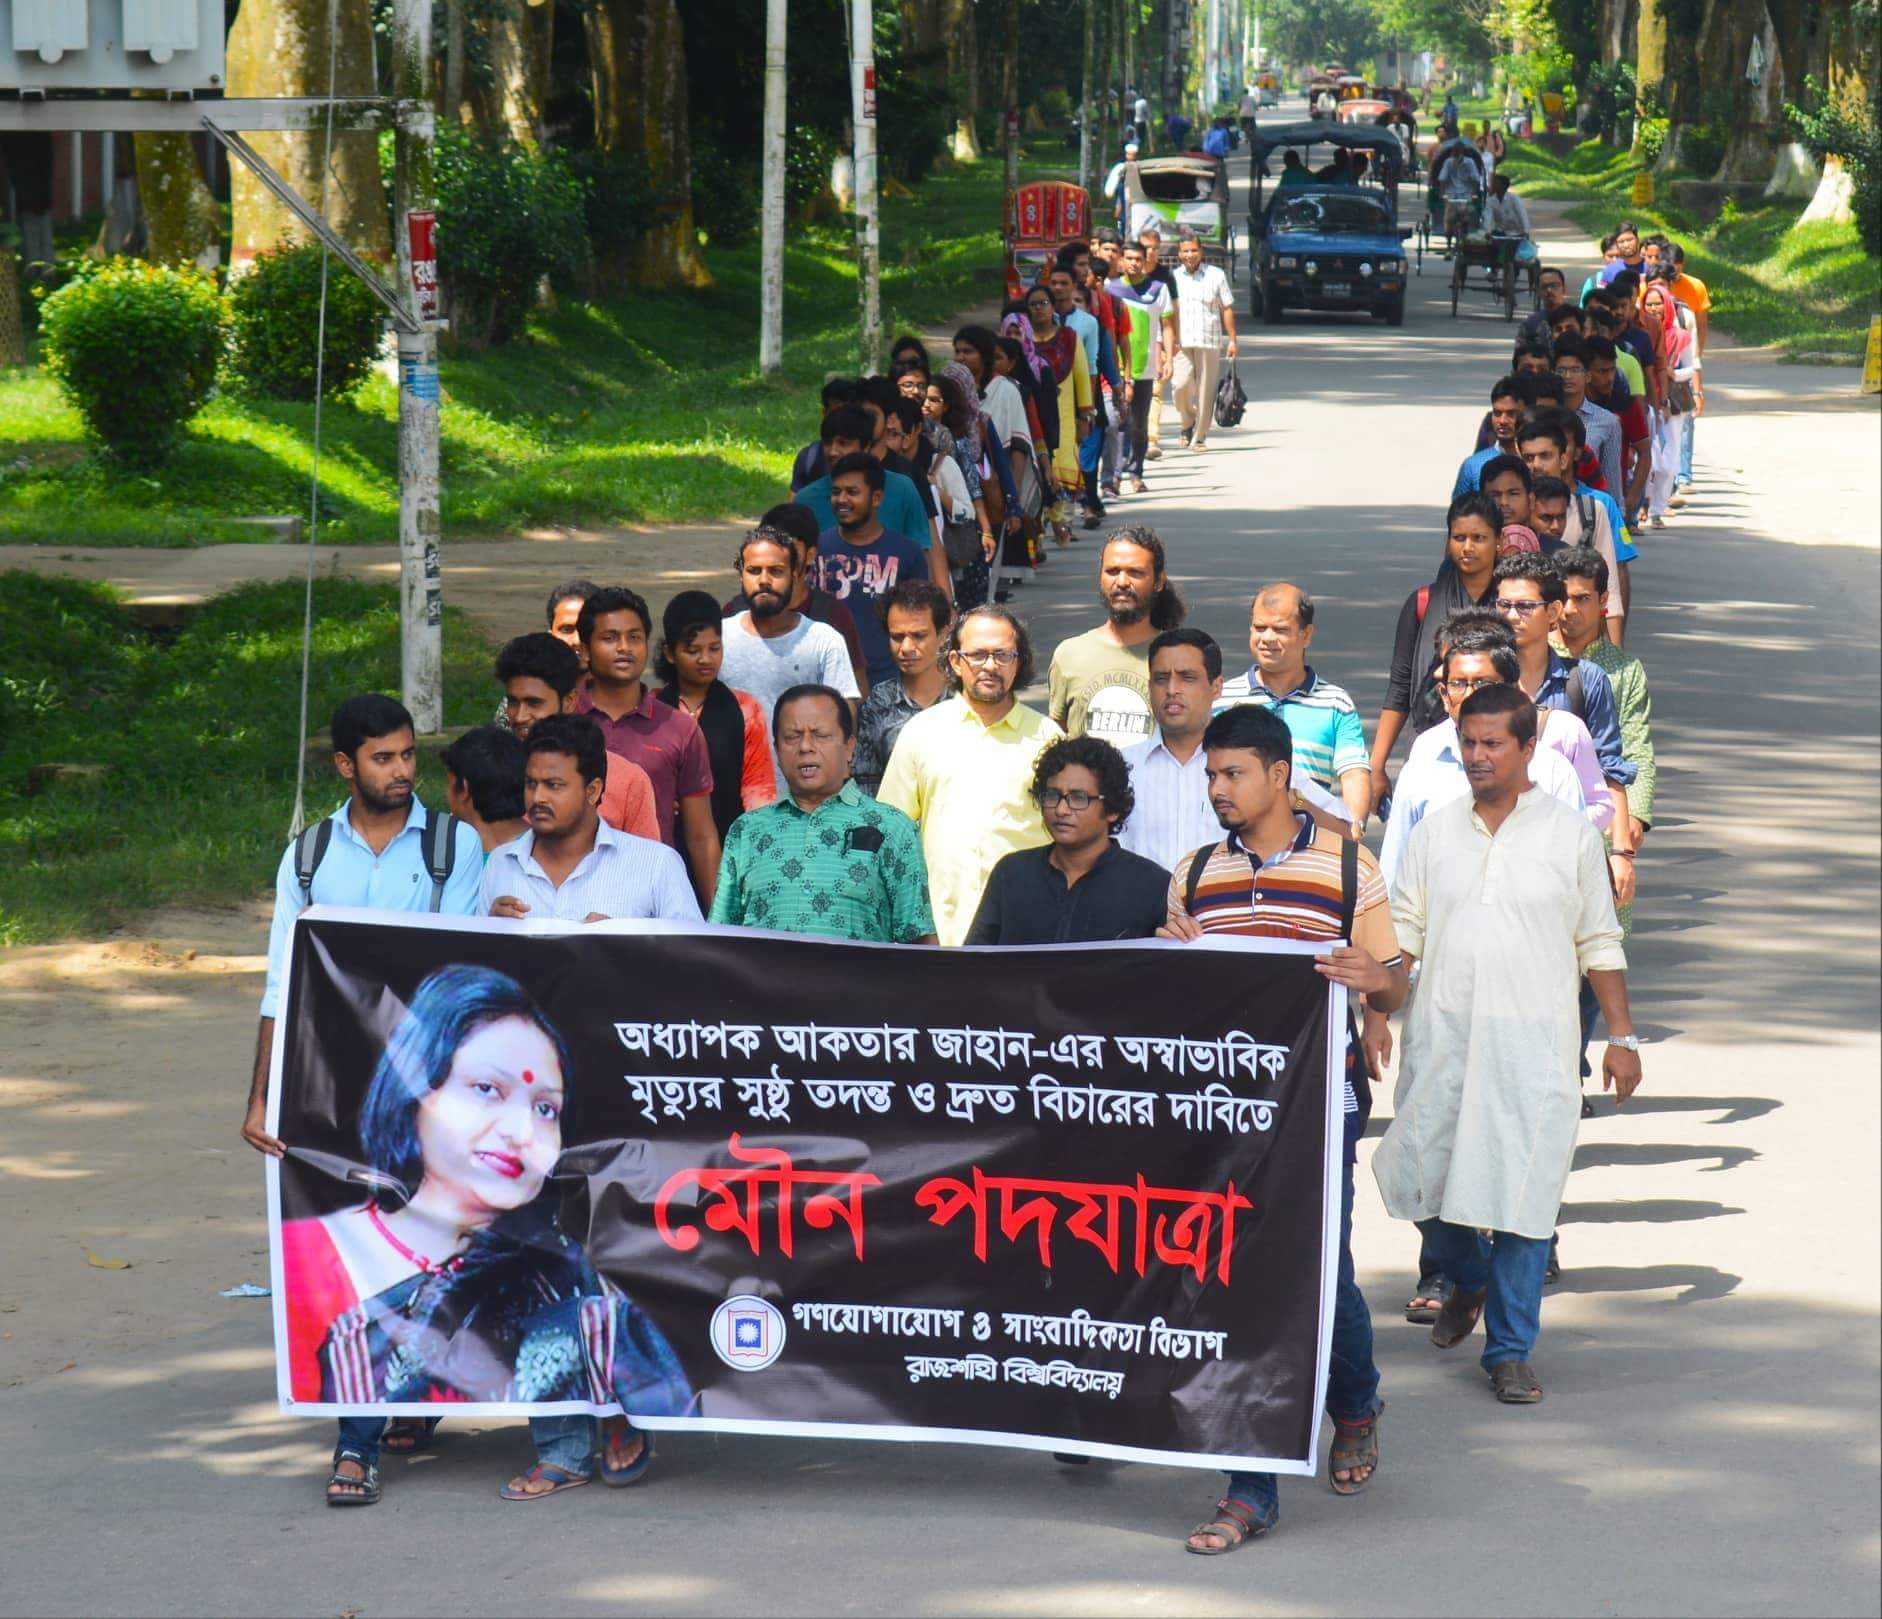 RU teachers, students demand fair probe into Akter murder